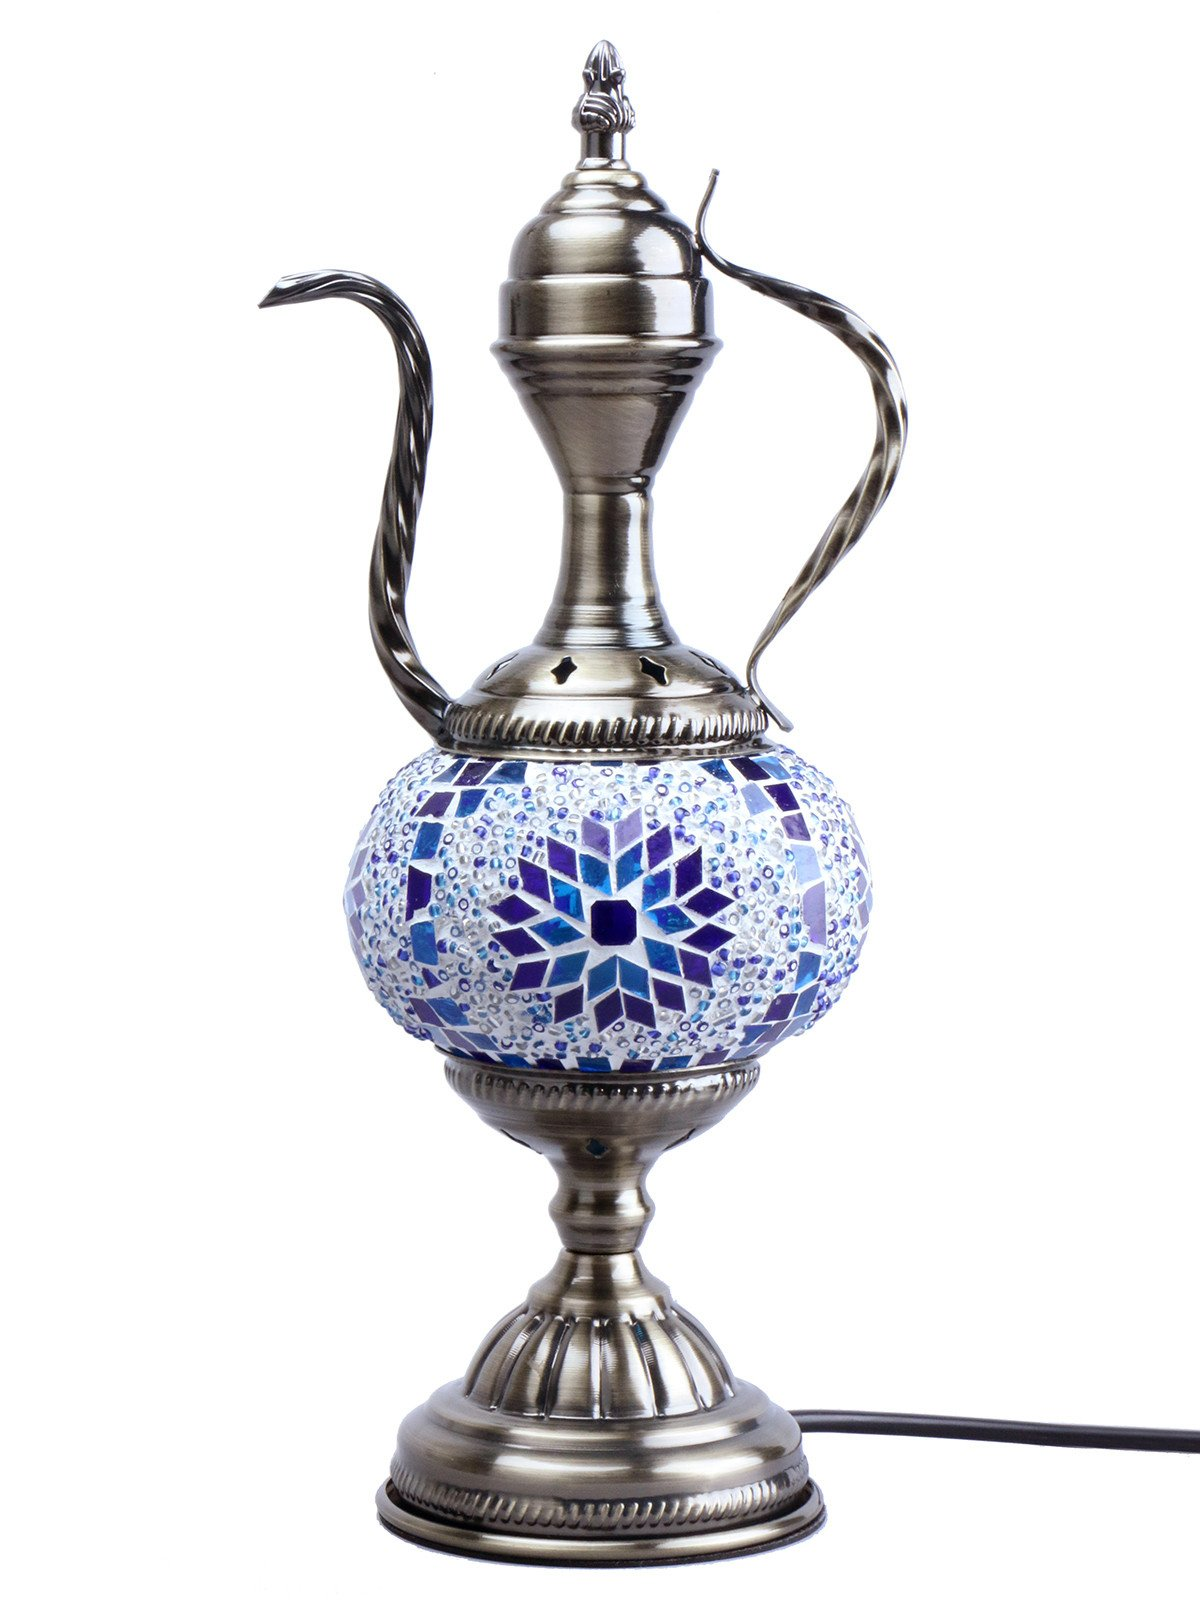 Cheap Turkish Mosaic Glass Table Lamp Find Turkish Mosaic Glass Table Lamp Deals On Line At Alibaba Com